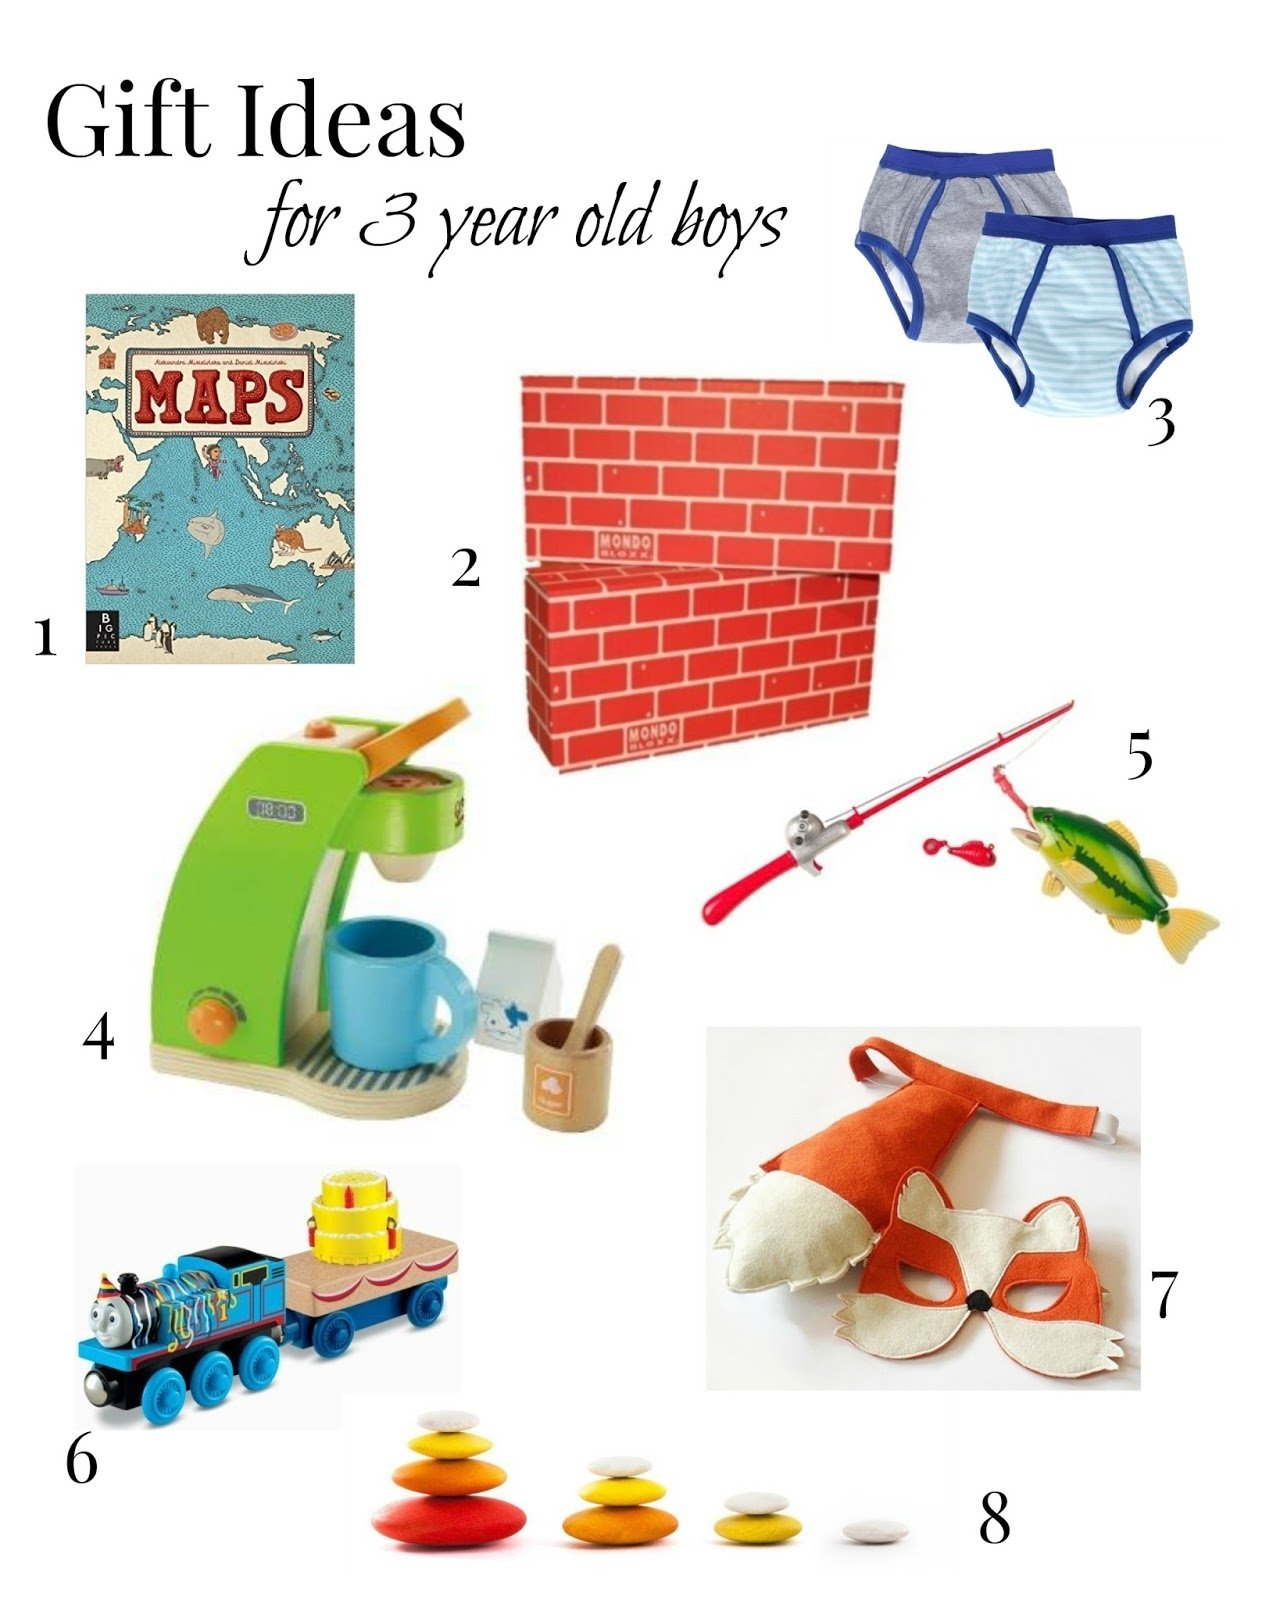 10 Cute Gift Ideas For A 3 Year Old Boy pink to green friday favorites gift ideas for 3 year old boys 6 2020